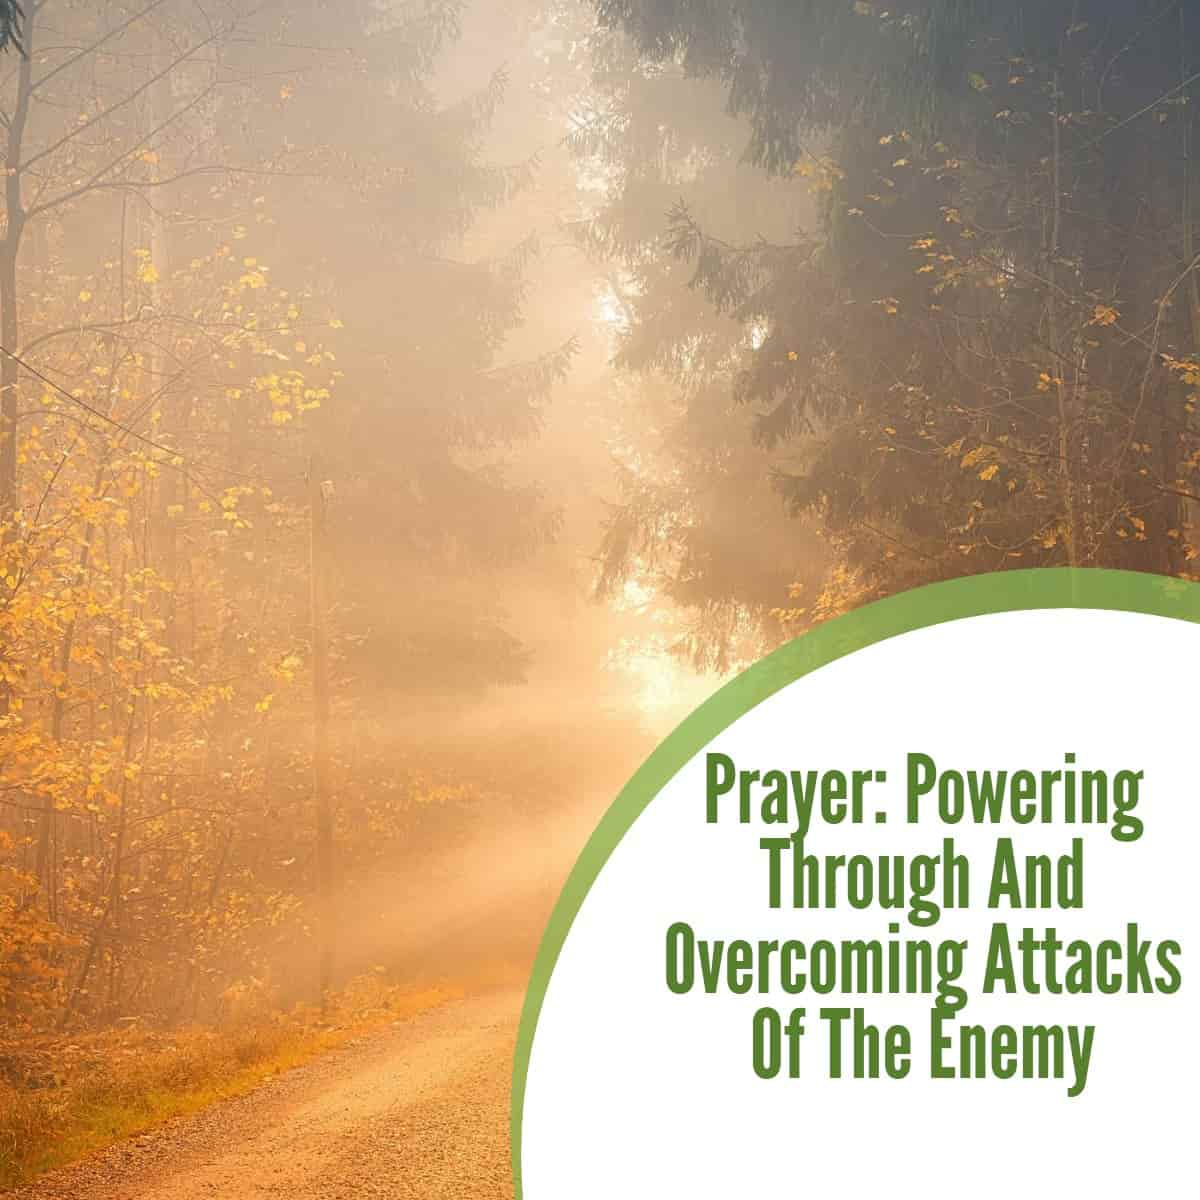 Prayer: Powering Through And Overcoming Attacks Of The Enemy